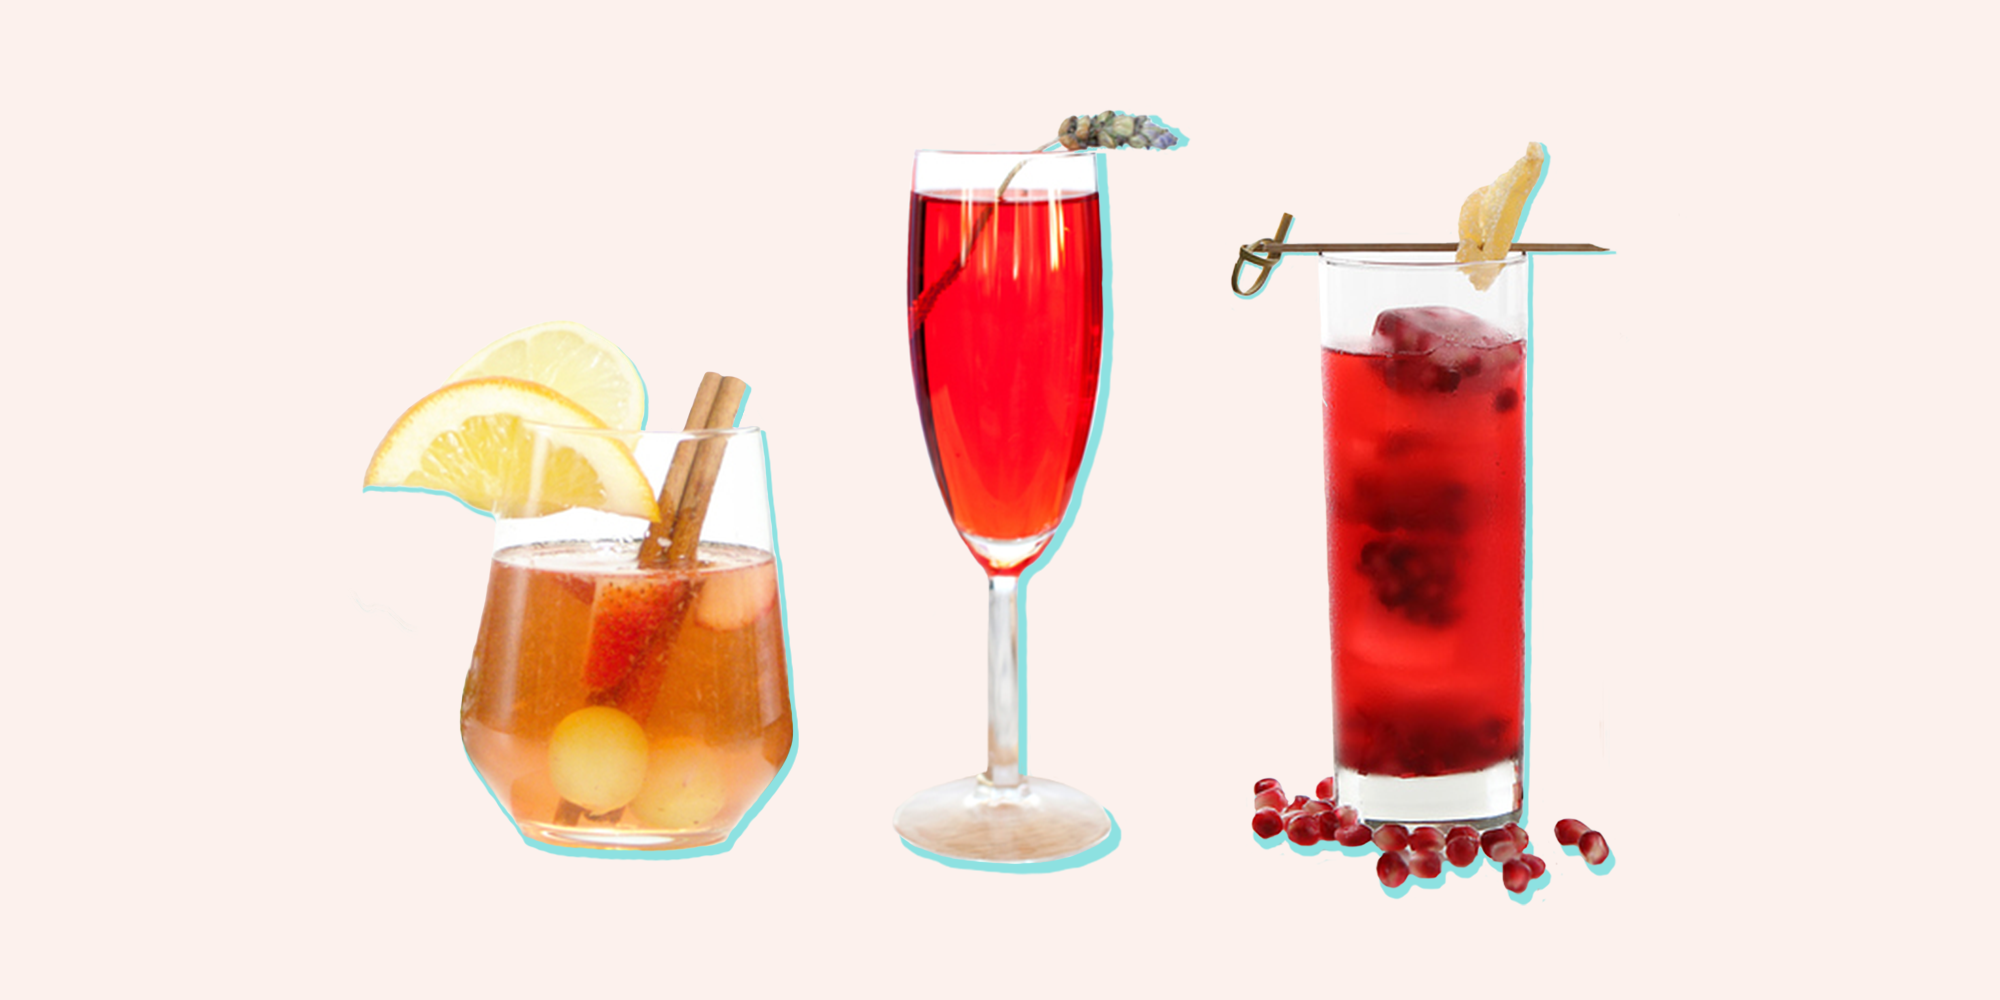 15 Champagne Cocktail Recipes Worth Throwing a Party For